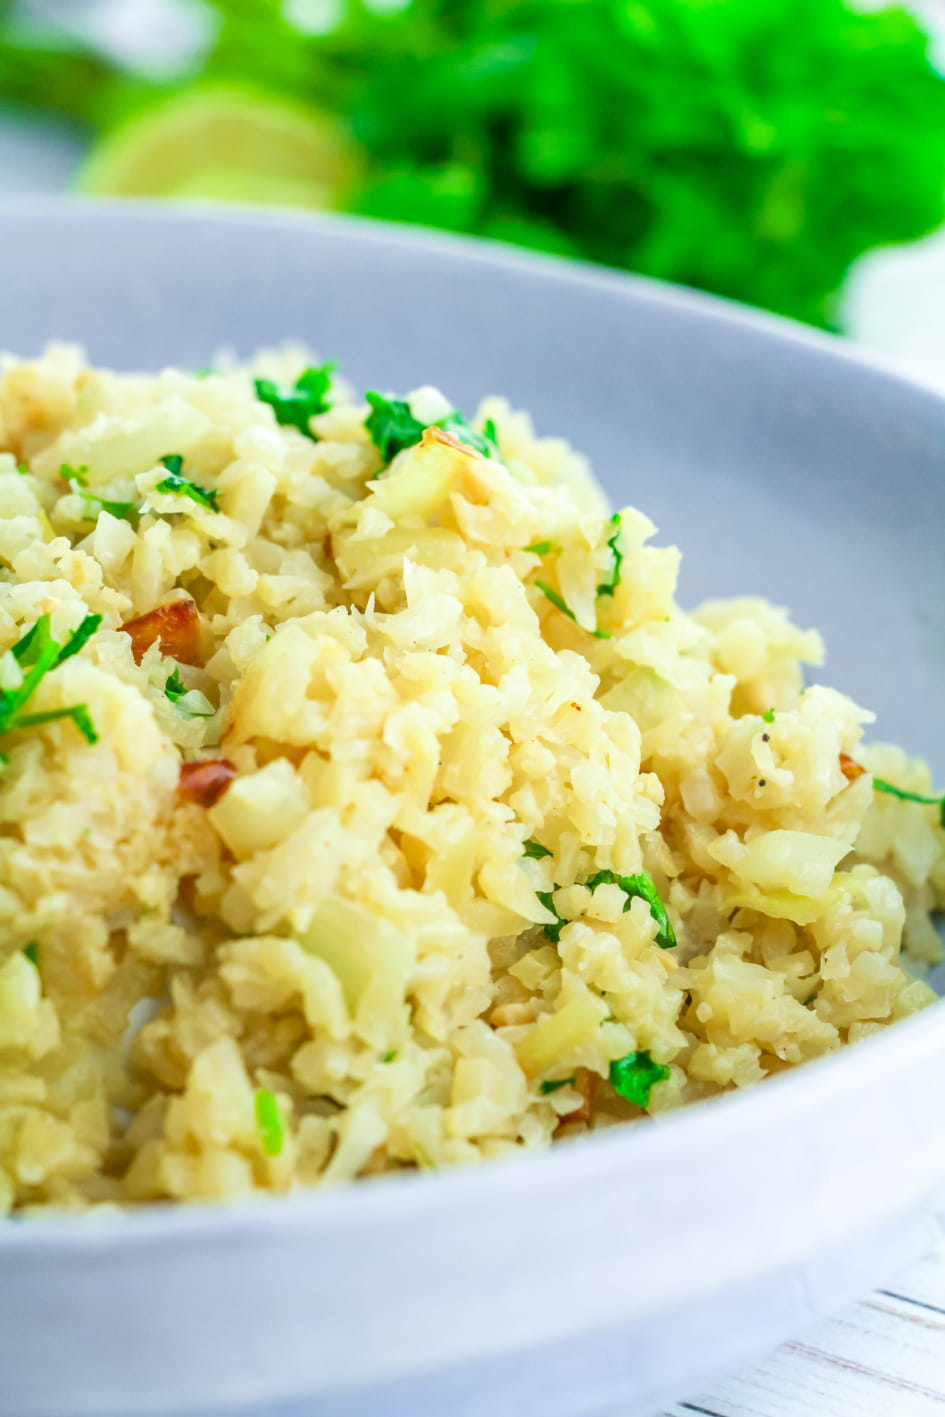 You almost can't tell it's Cauliflower Rice!